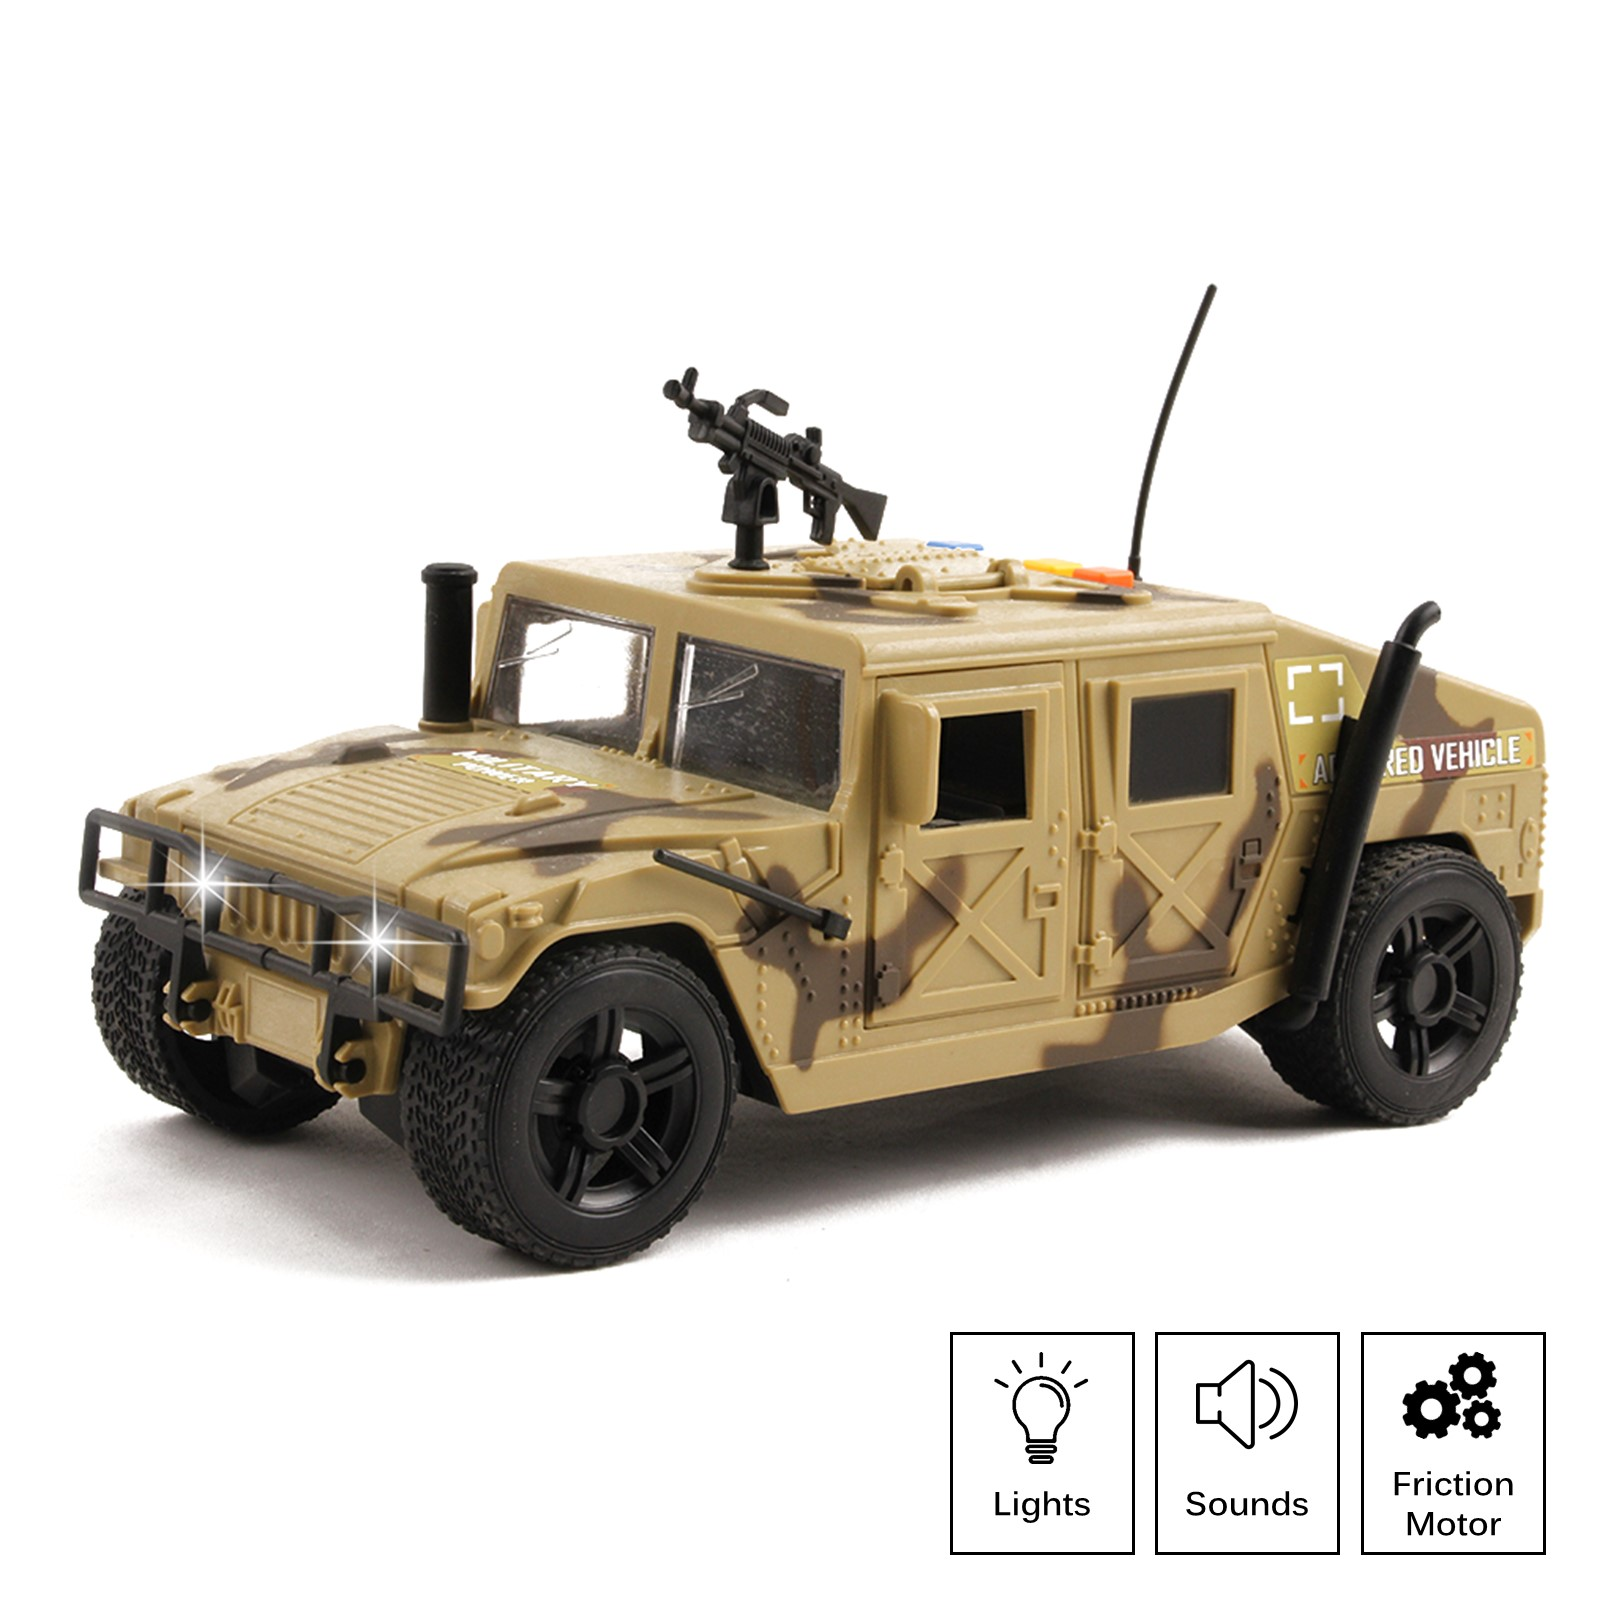 Military Fighter Truck Friction Powered With Lights And Sounds Kids Push And Go 1:16 Scale Pretend Play Armored Army Vehicle Doors Open Quality Action Toy Car Great Gift For Children Boys Girls